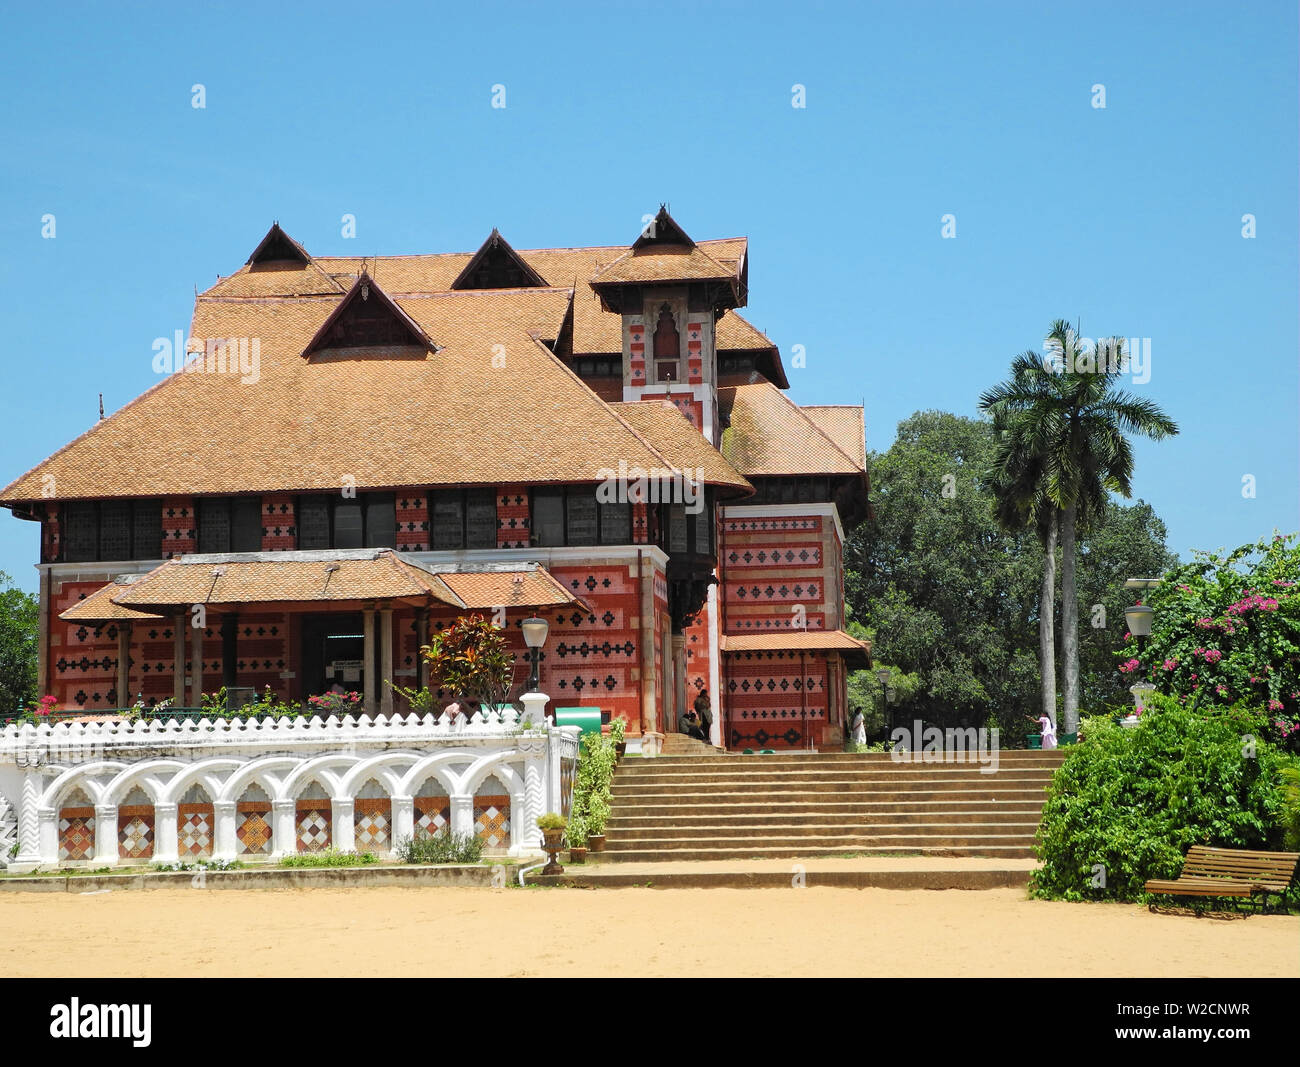 Museum building in the zoo of the city of Trivandrum Stock Photo